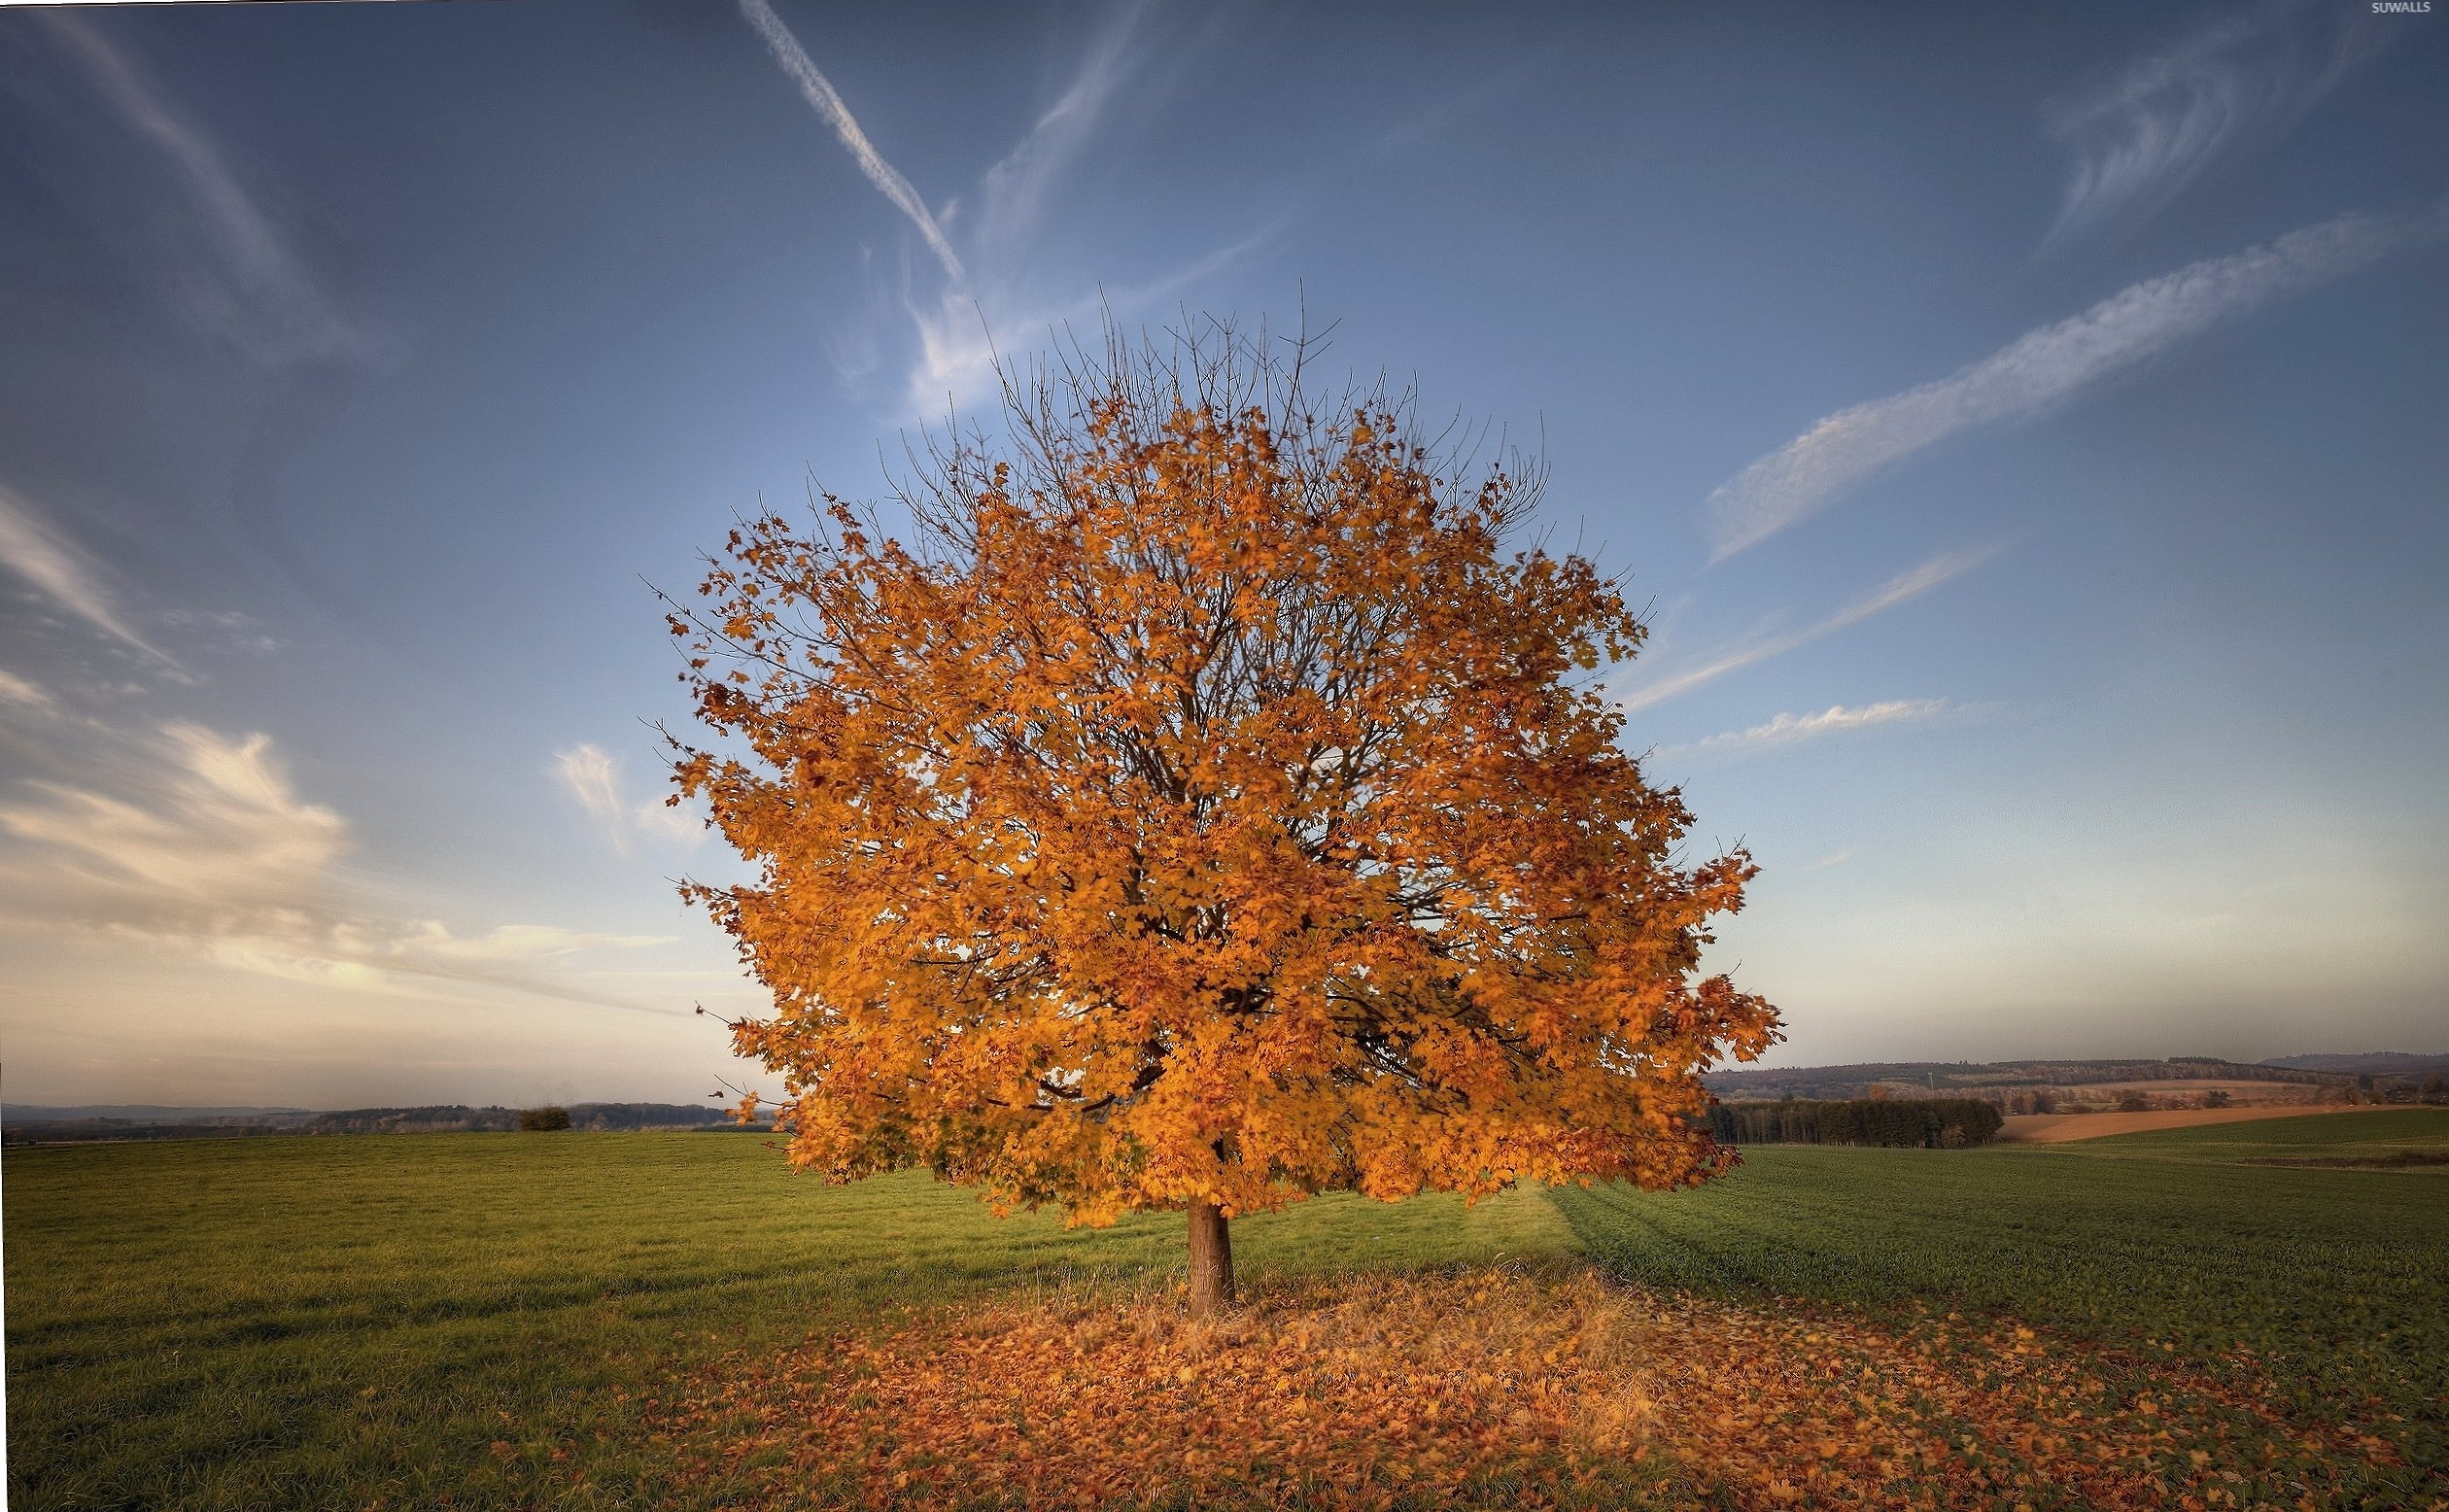 Lonesome autumn tree losing its leaves on the field at 1024 x 1024 iPad size wallpapers HD quality